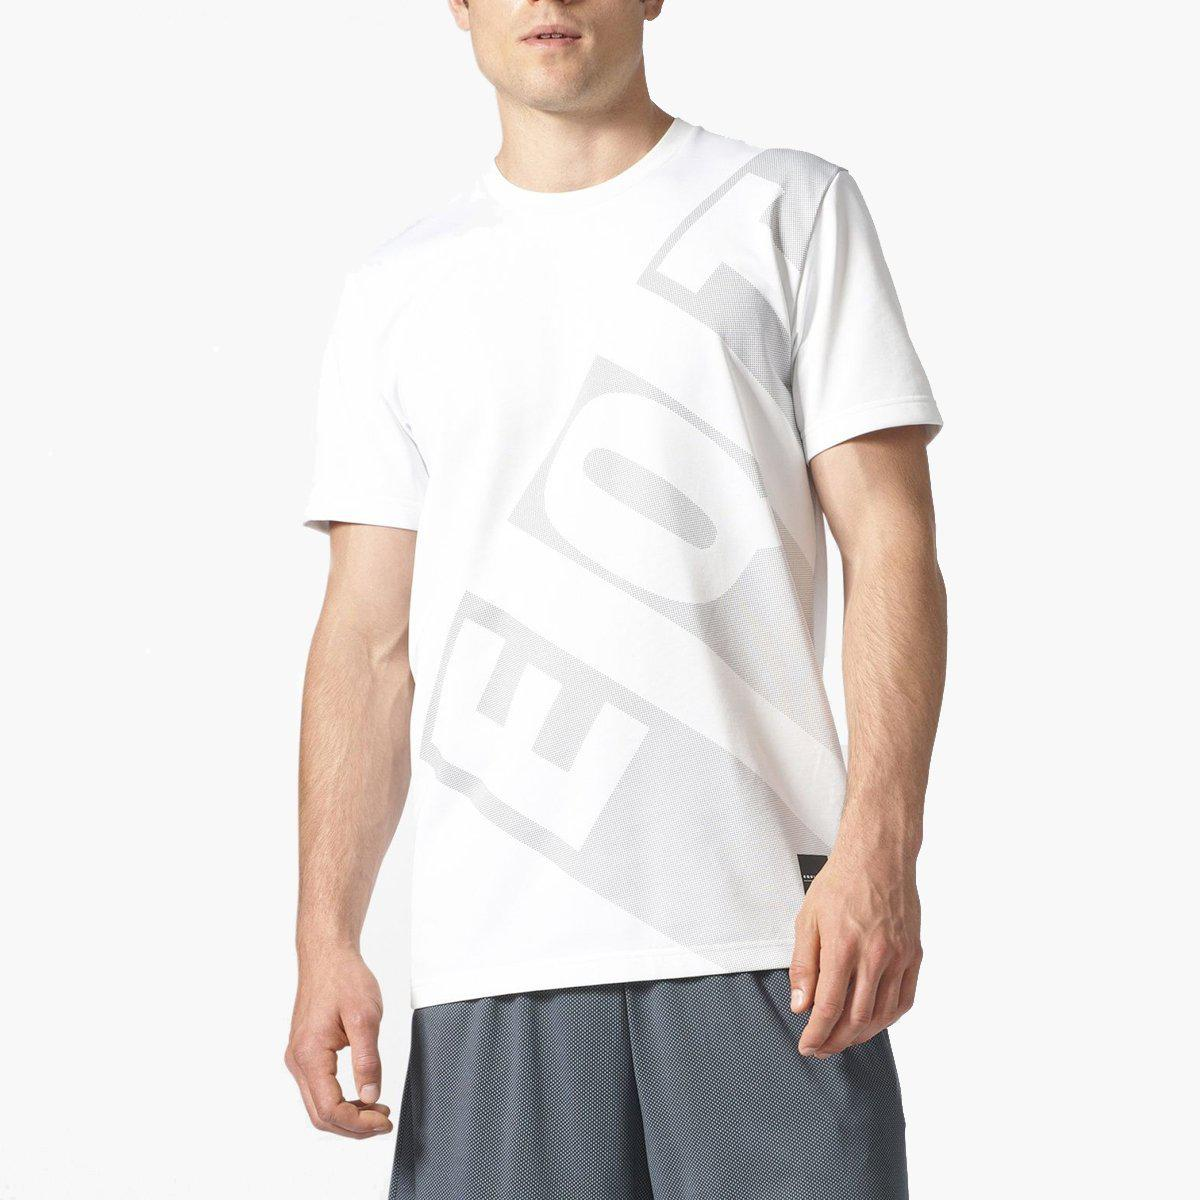 91e22bf405b3 Lyst - Adidas Originals Eqt Em Tee in White for Men